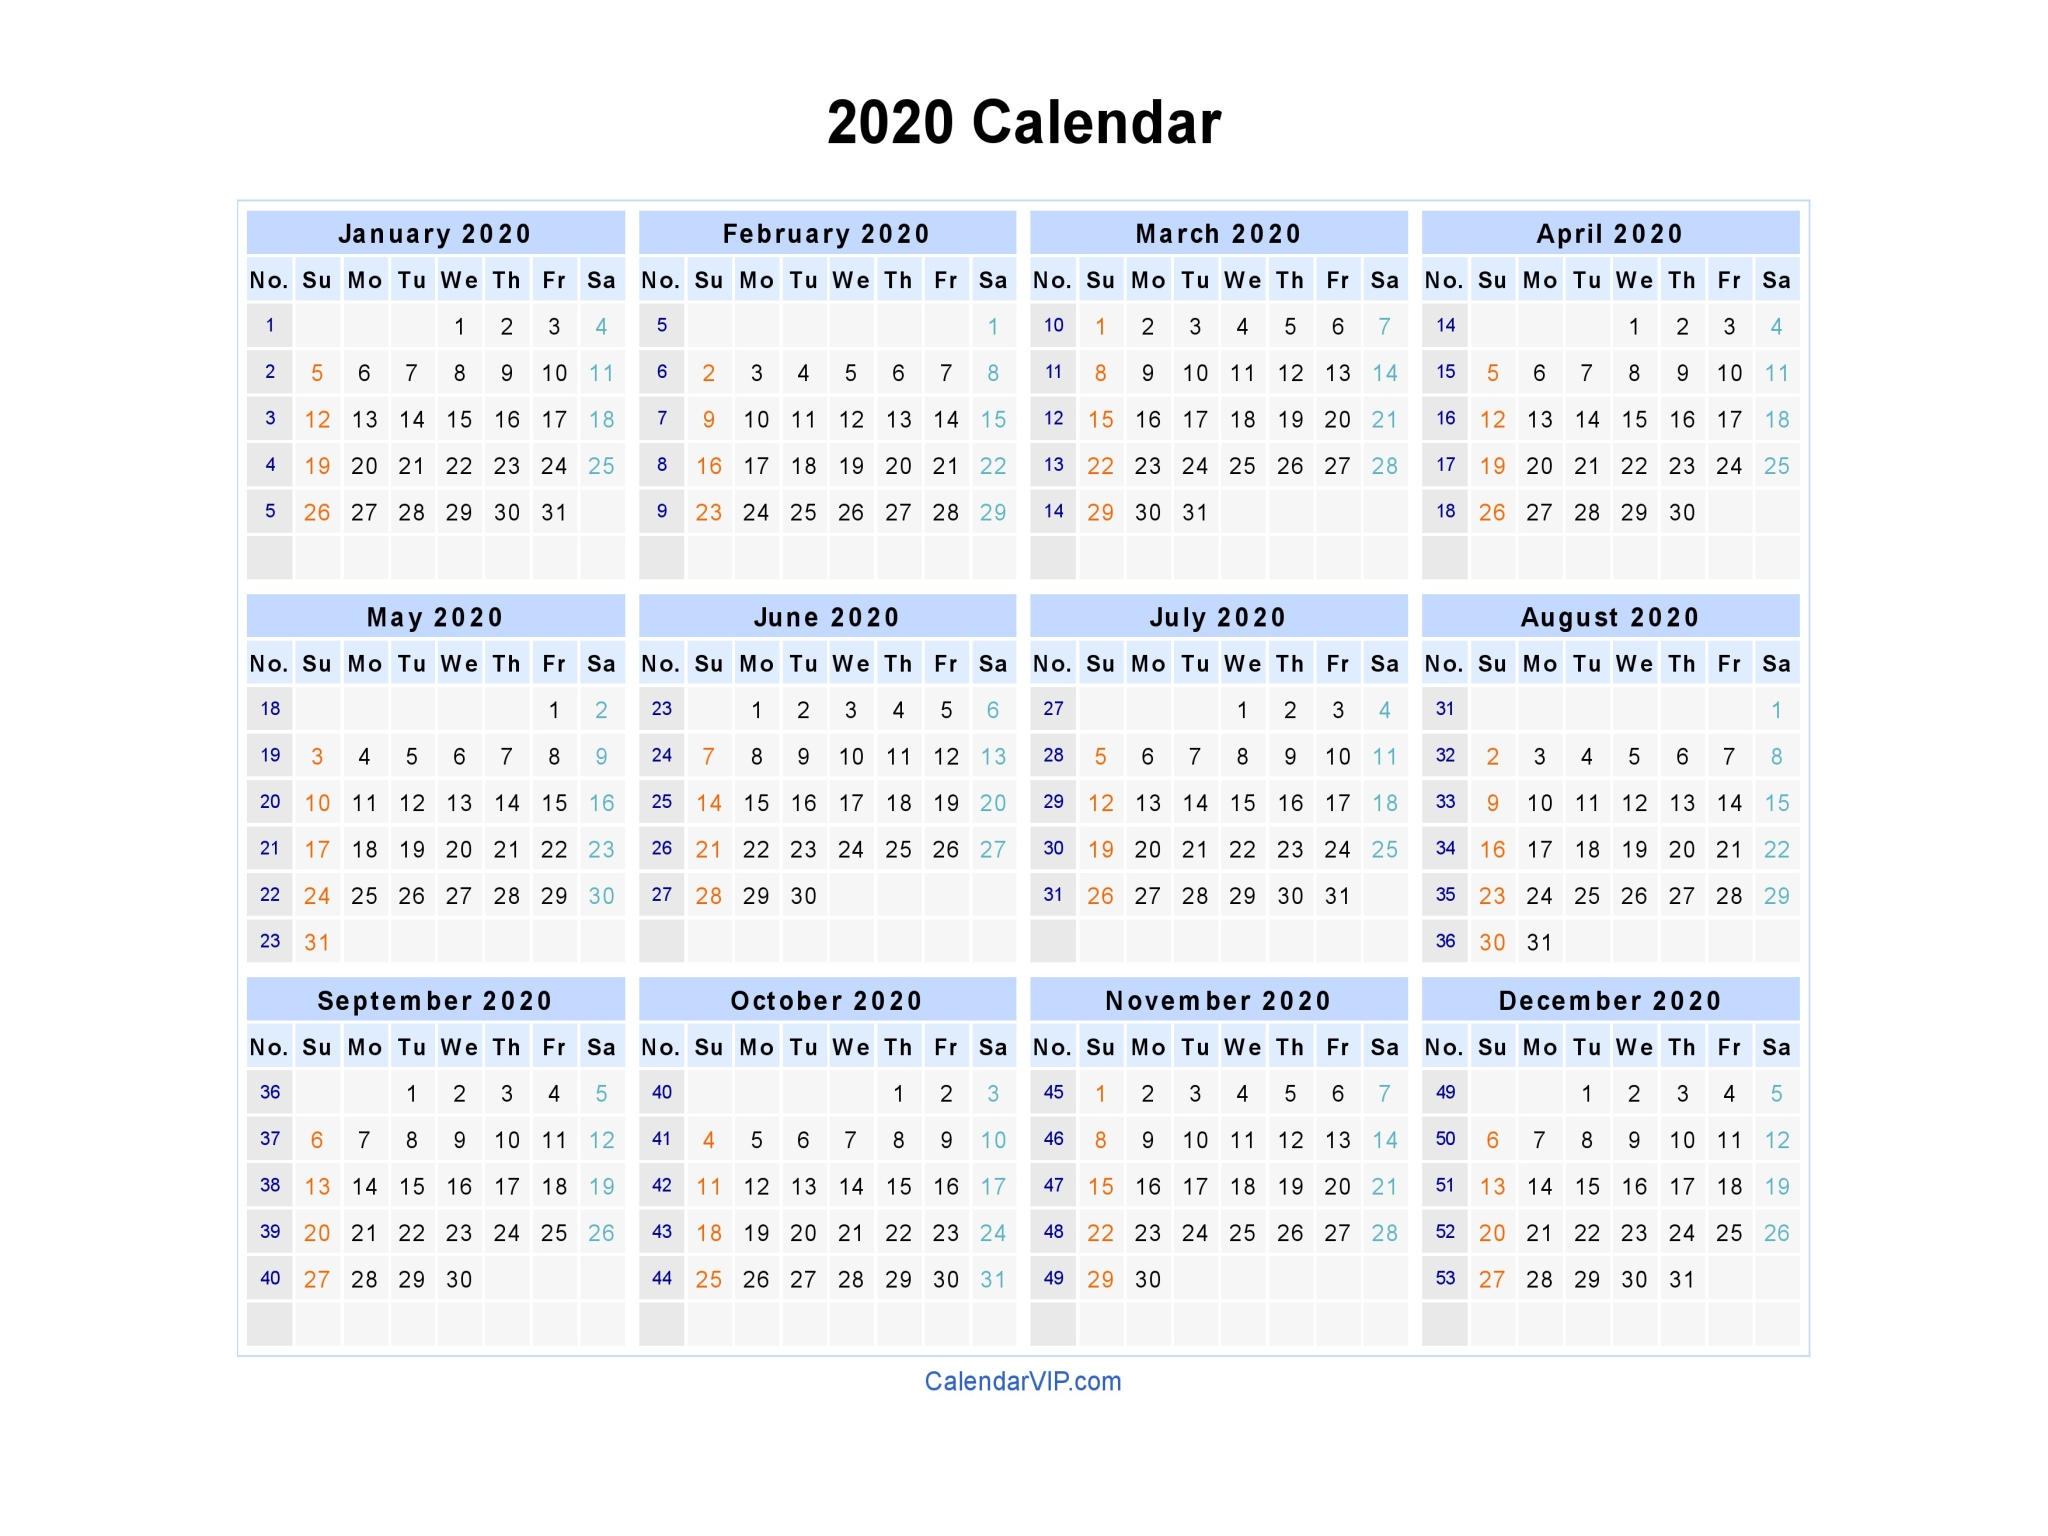 2020 Calendar - Blank Printable Calendar Template In Pdf Word Excel with Free Printable Calendar For 2020 With No Download